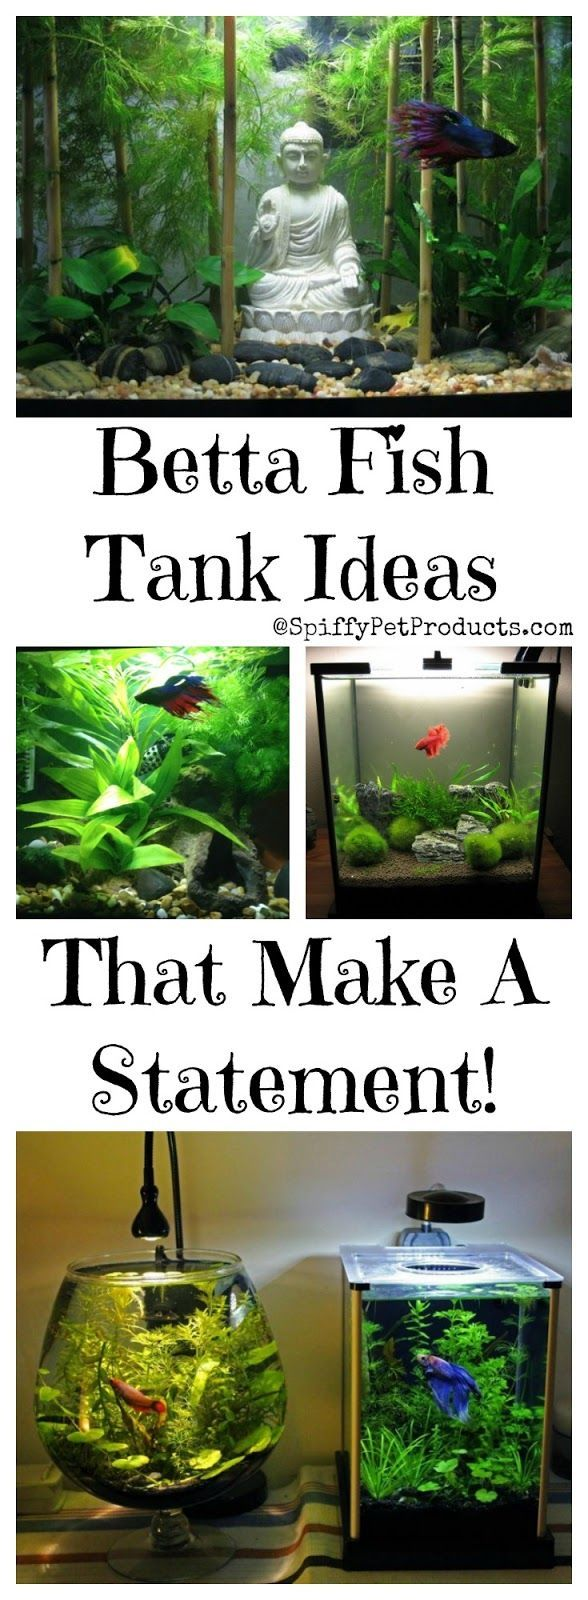 Aquarium fish tank decorations - Betta Fish Tank Setup Ideas For Your Pet Fish That Make A Statement And Adds To